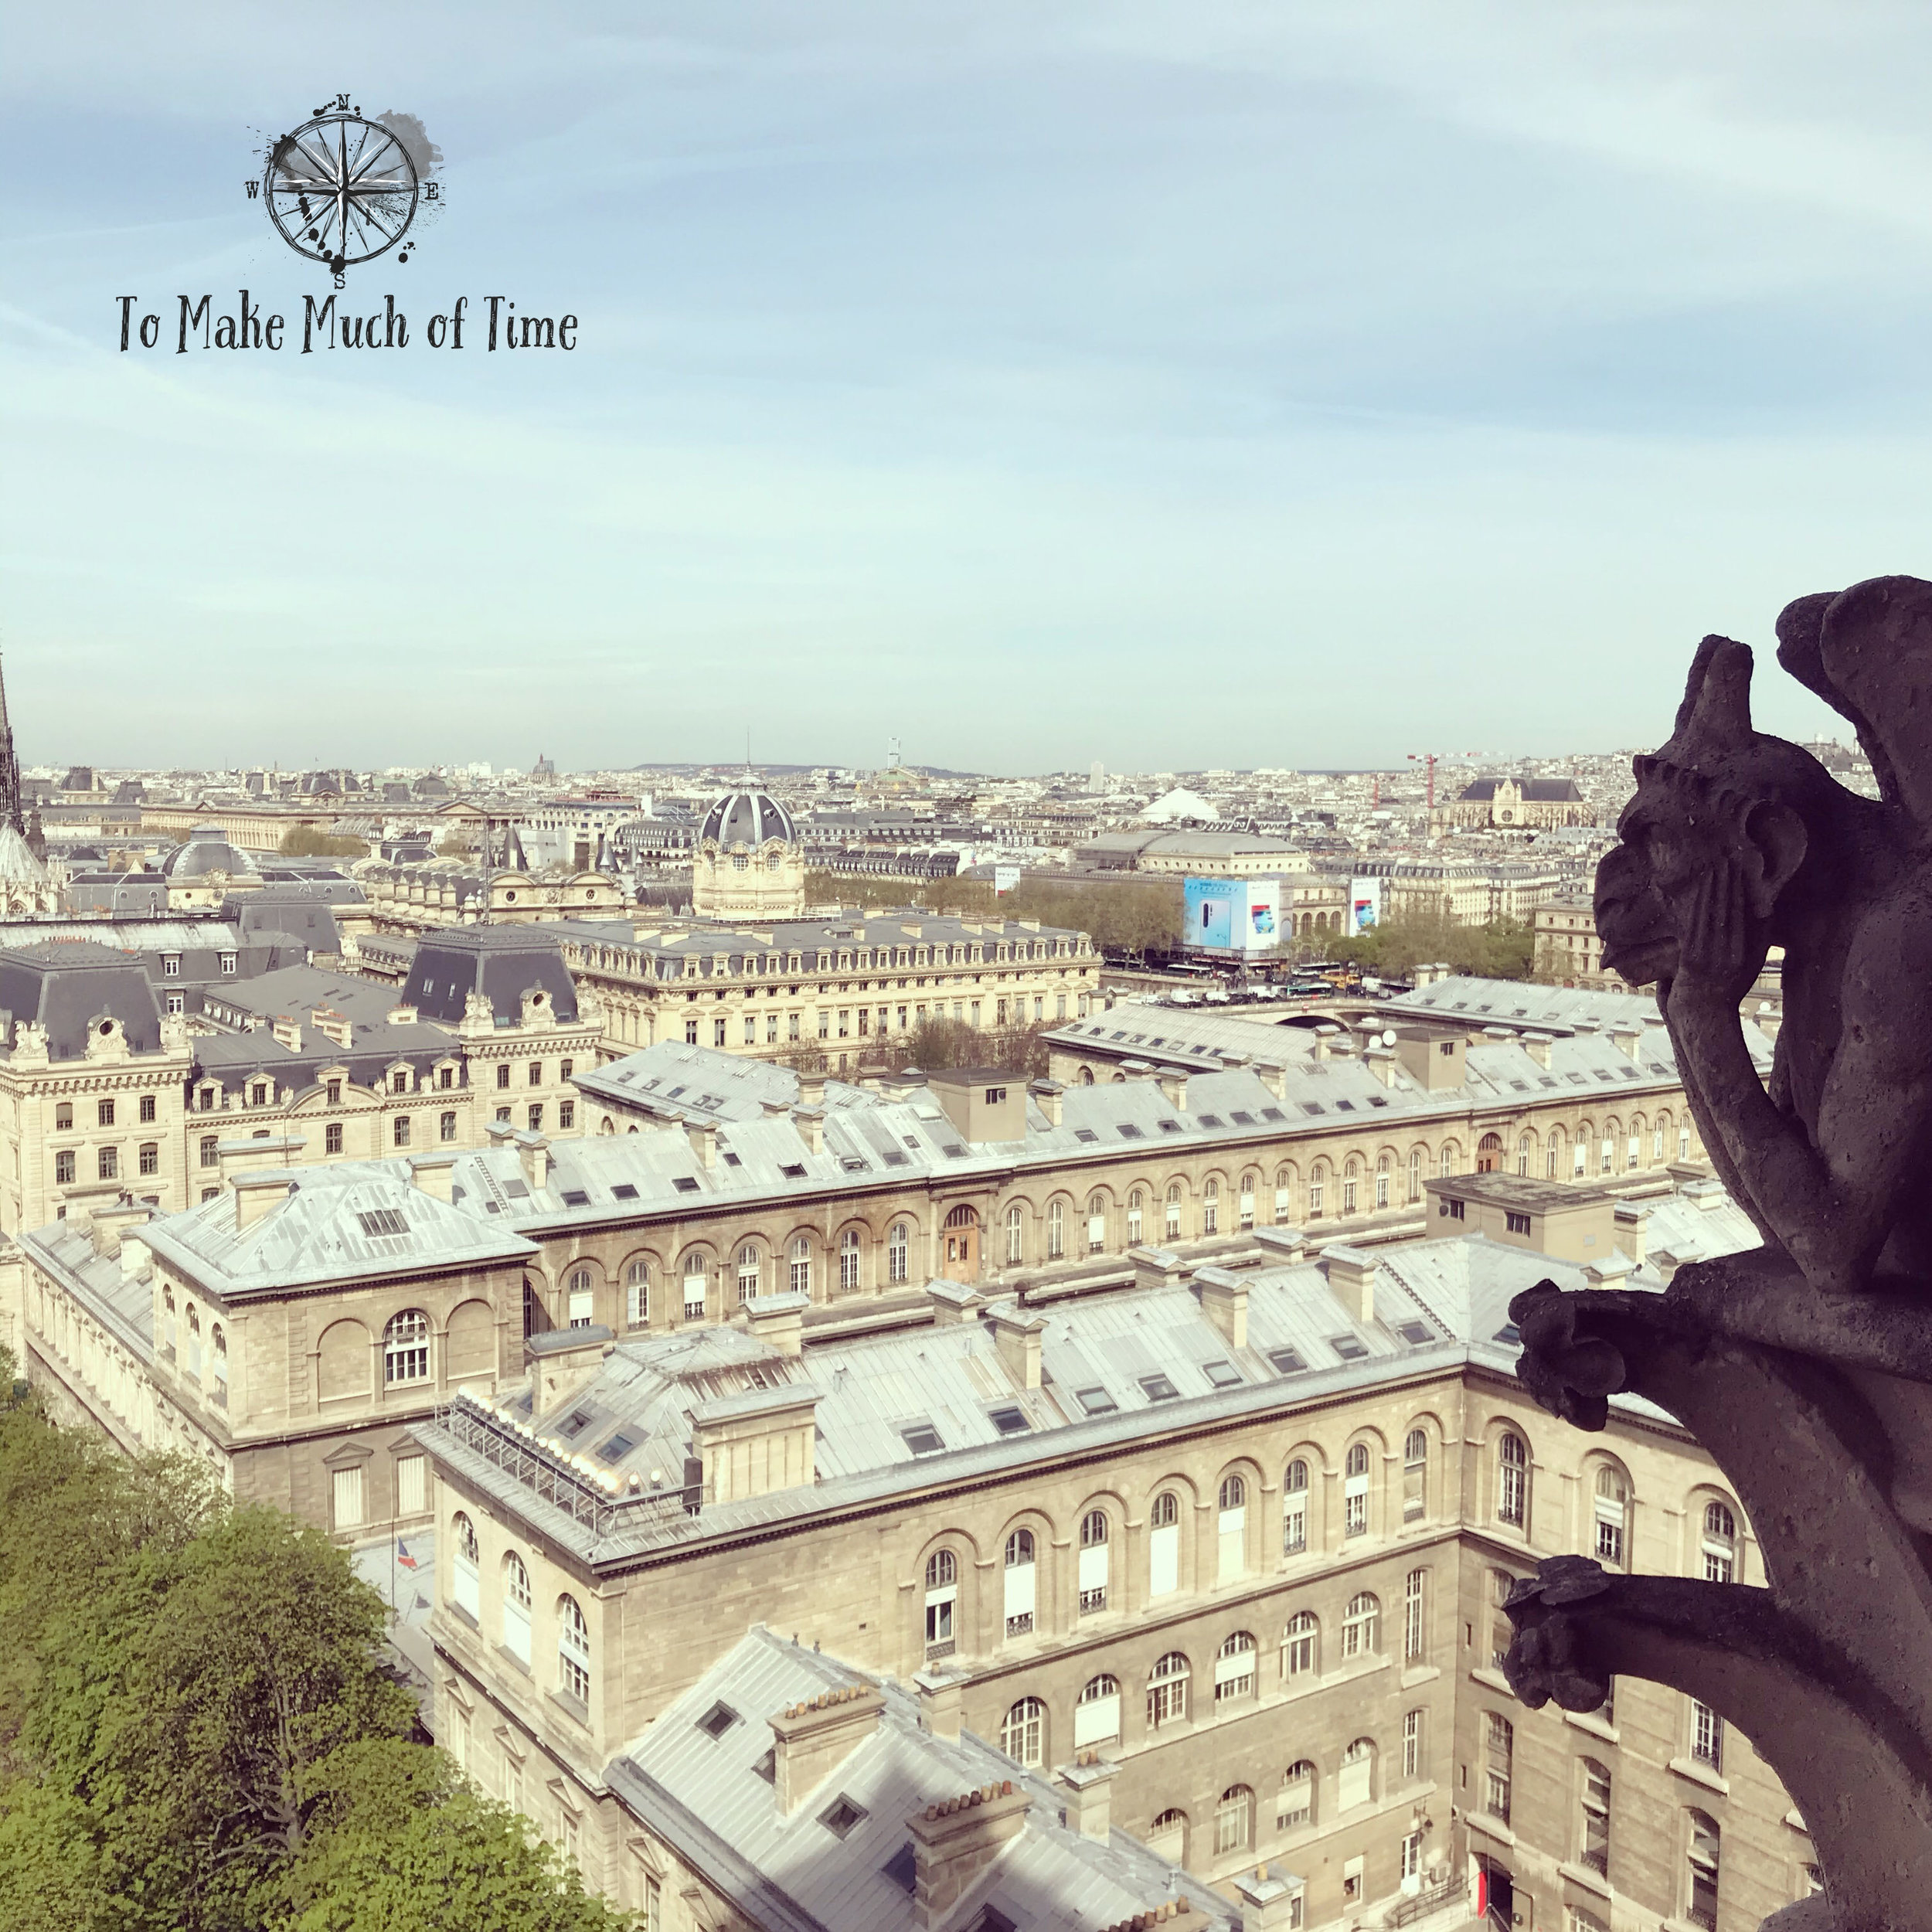 What a view of Paris, even the chimera of Notre Dame approves!